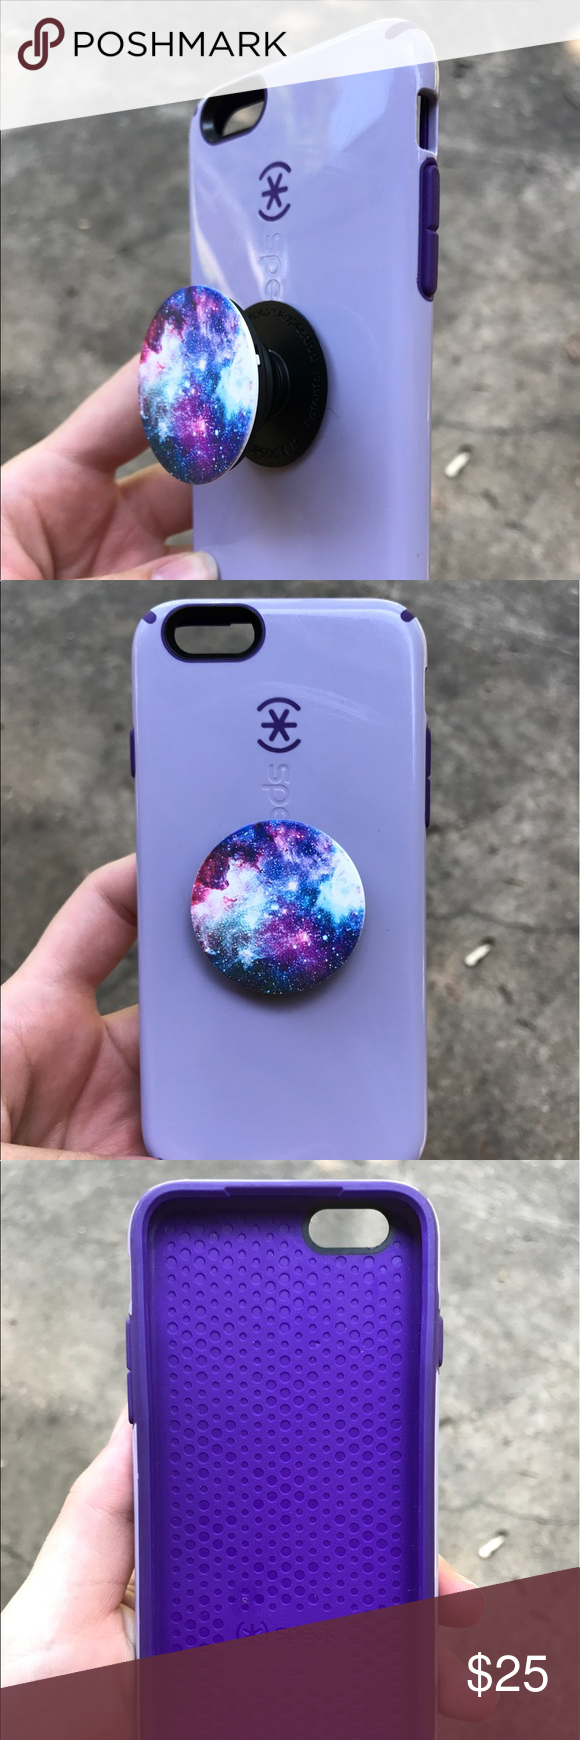 promo code 0fb03 a3ccd Speck iPhone 6/6S Case Purple speck case for iPhone 6/6S with galaxy ...